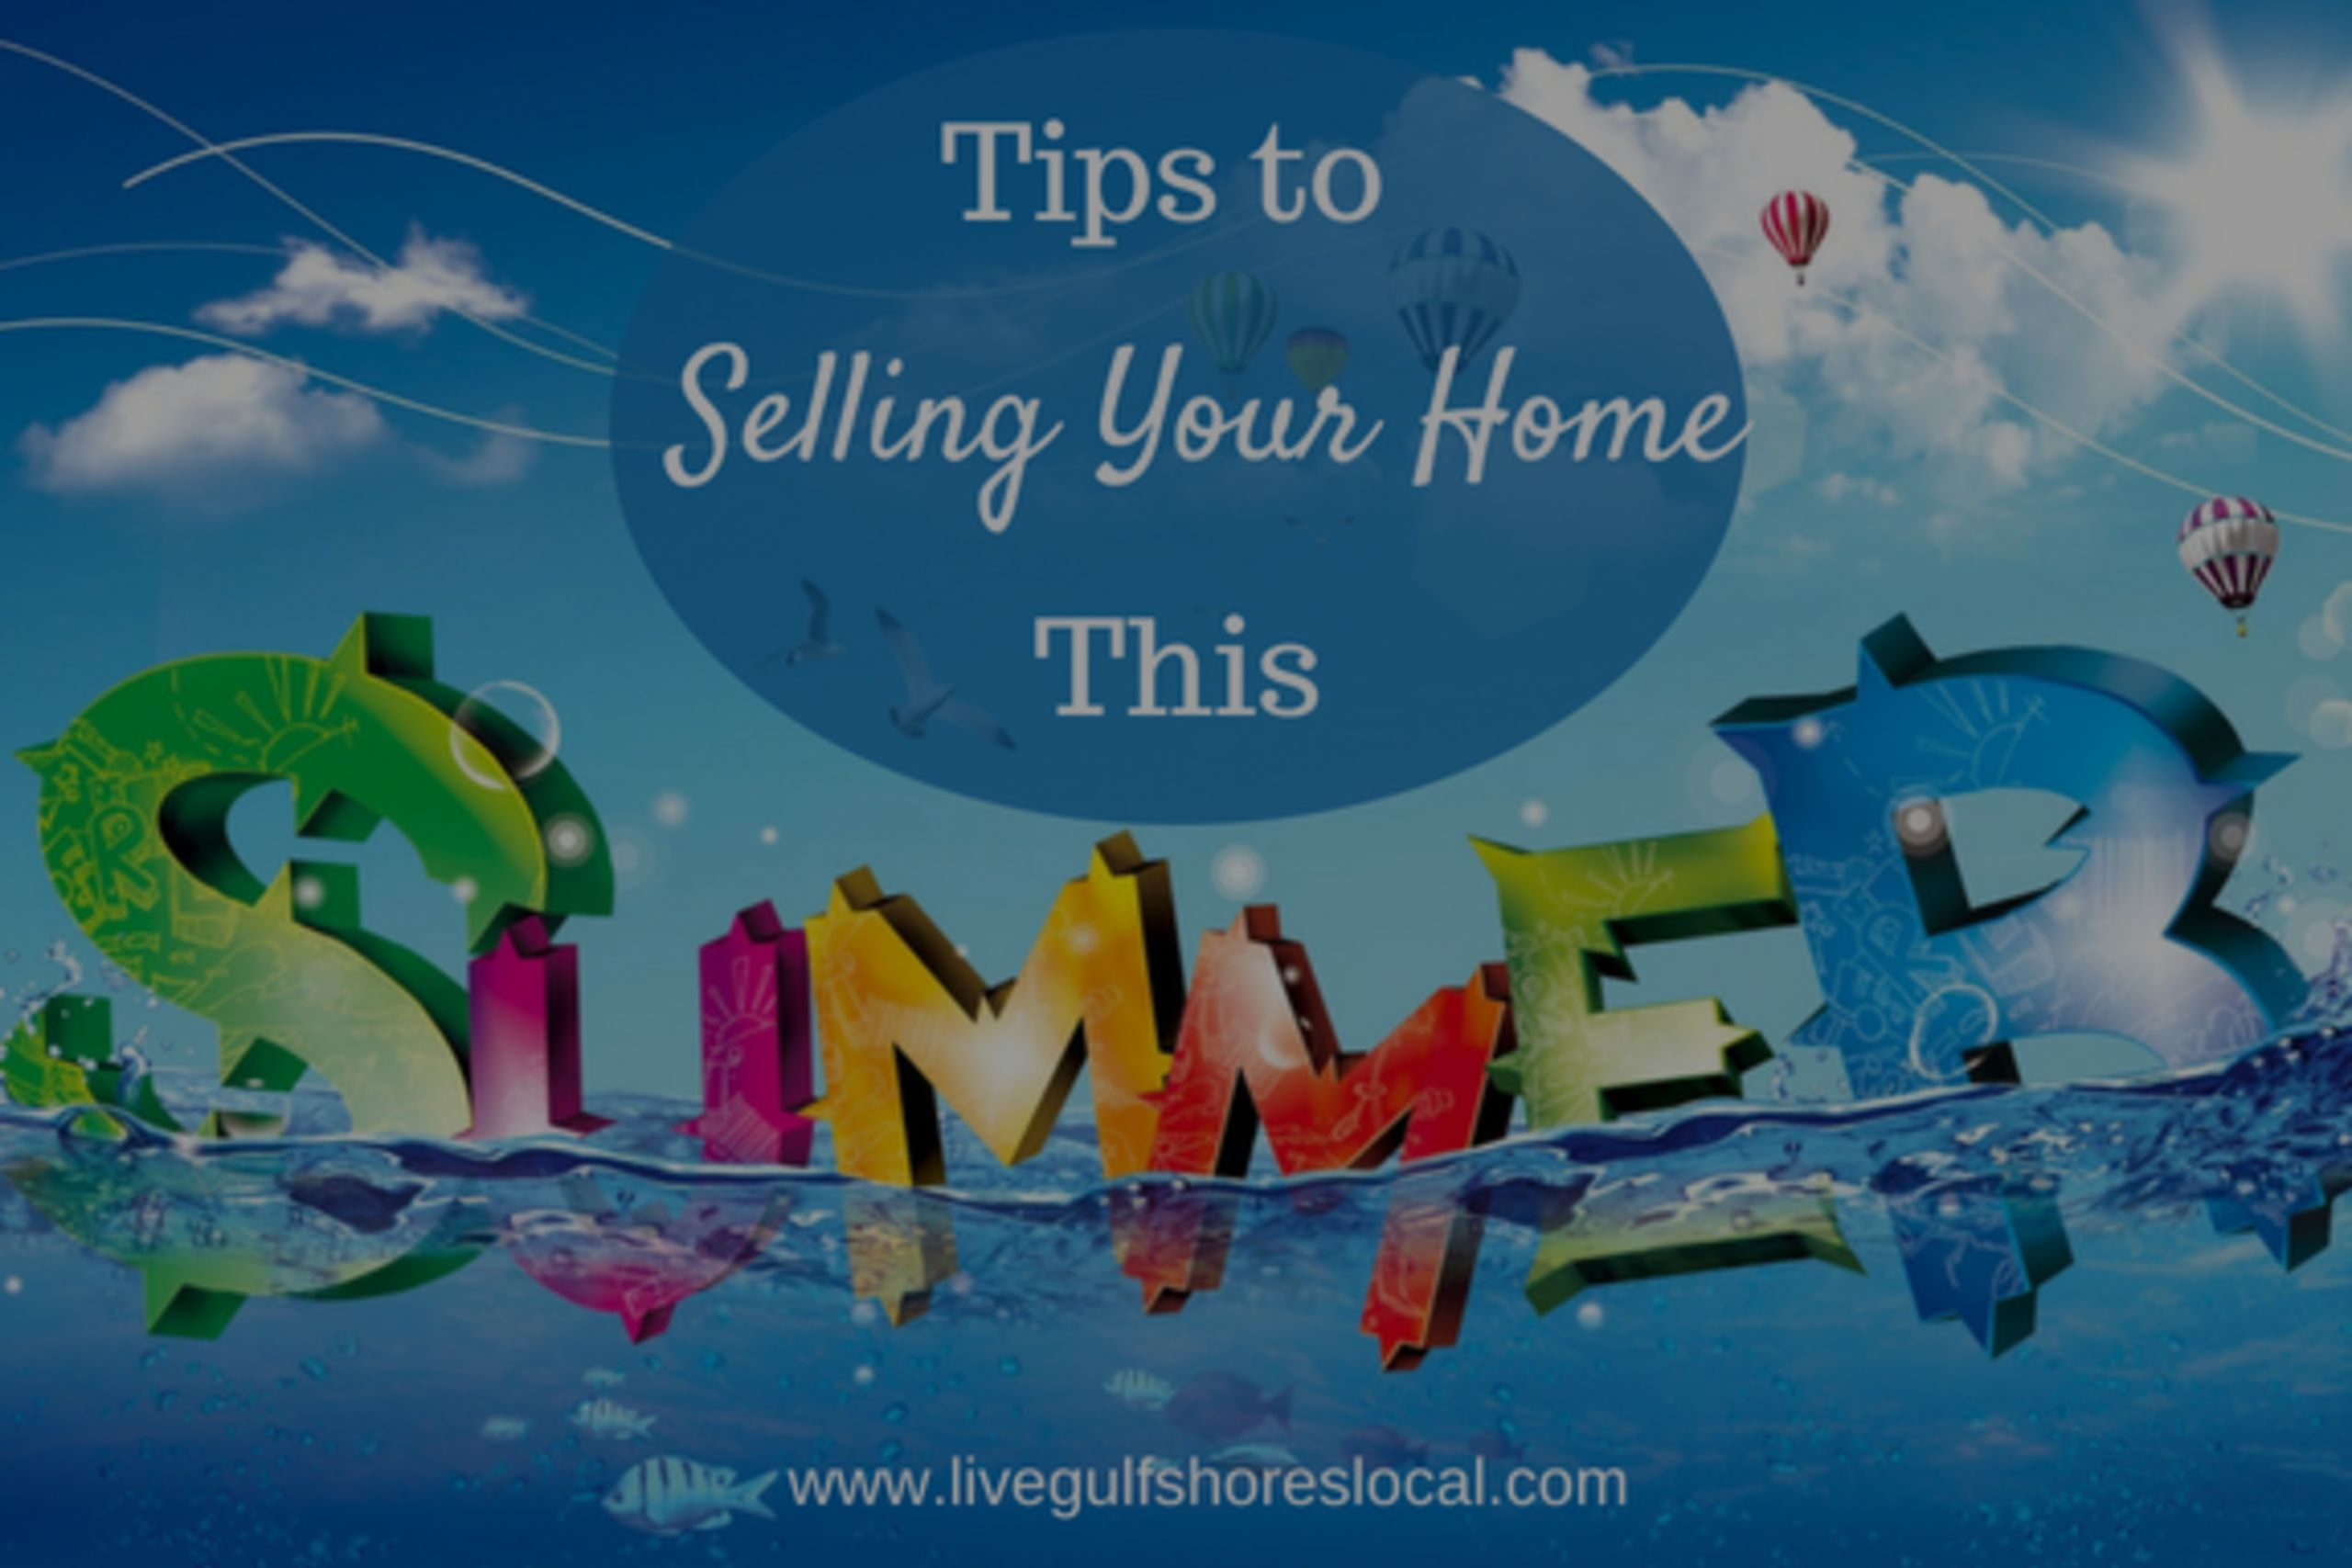 Tips for Selling Your Home This Summer